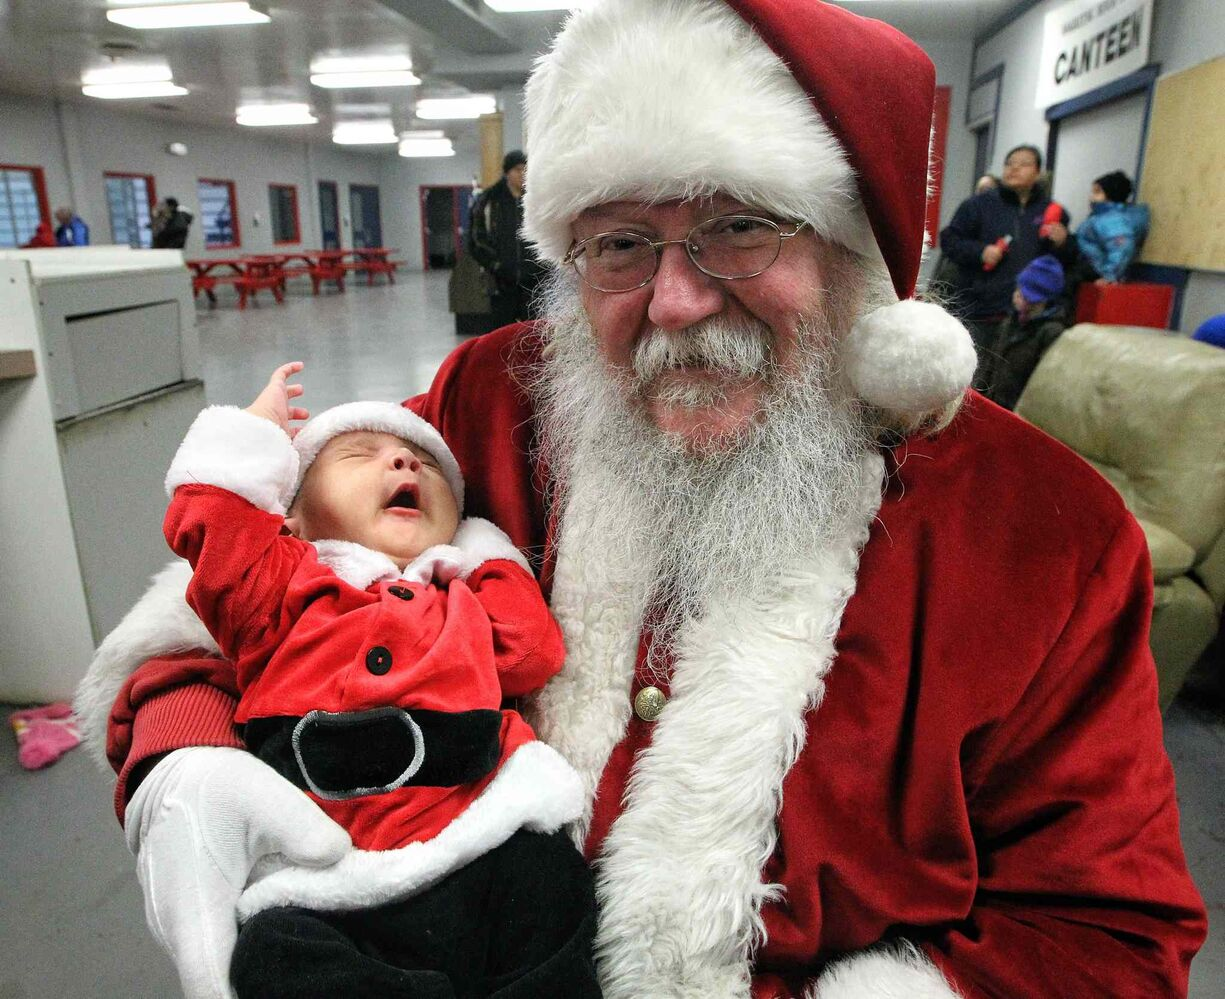 Five-week-old Channing Edwards, dressed like a miniature Santa, gives a huge yawn while visiting Santa at the Sagkeeng Arena Multi-Plex during Santa's visit to the Sagkeeng First Nation.